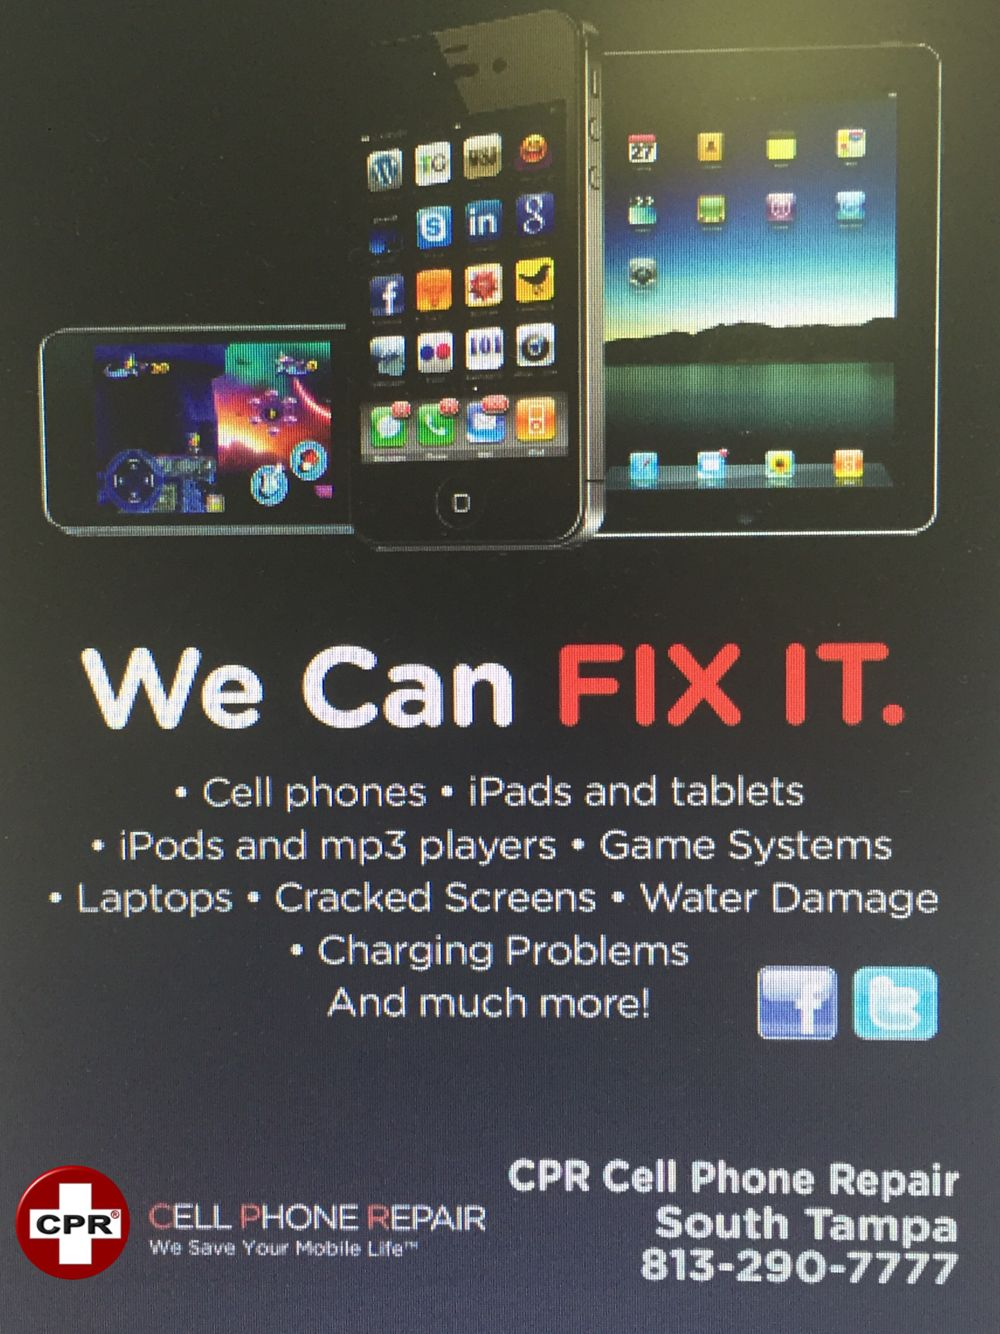 We can fix it Cracked screen, Save yourself, Canning